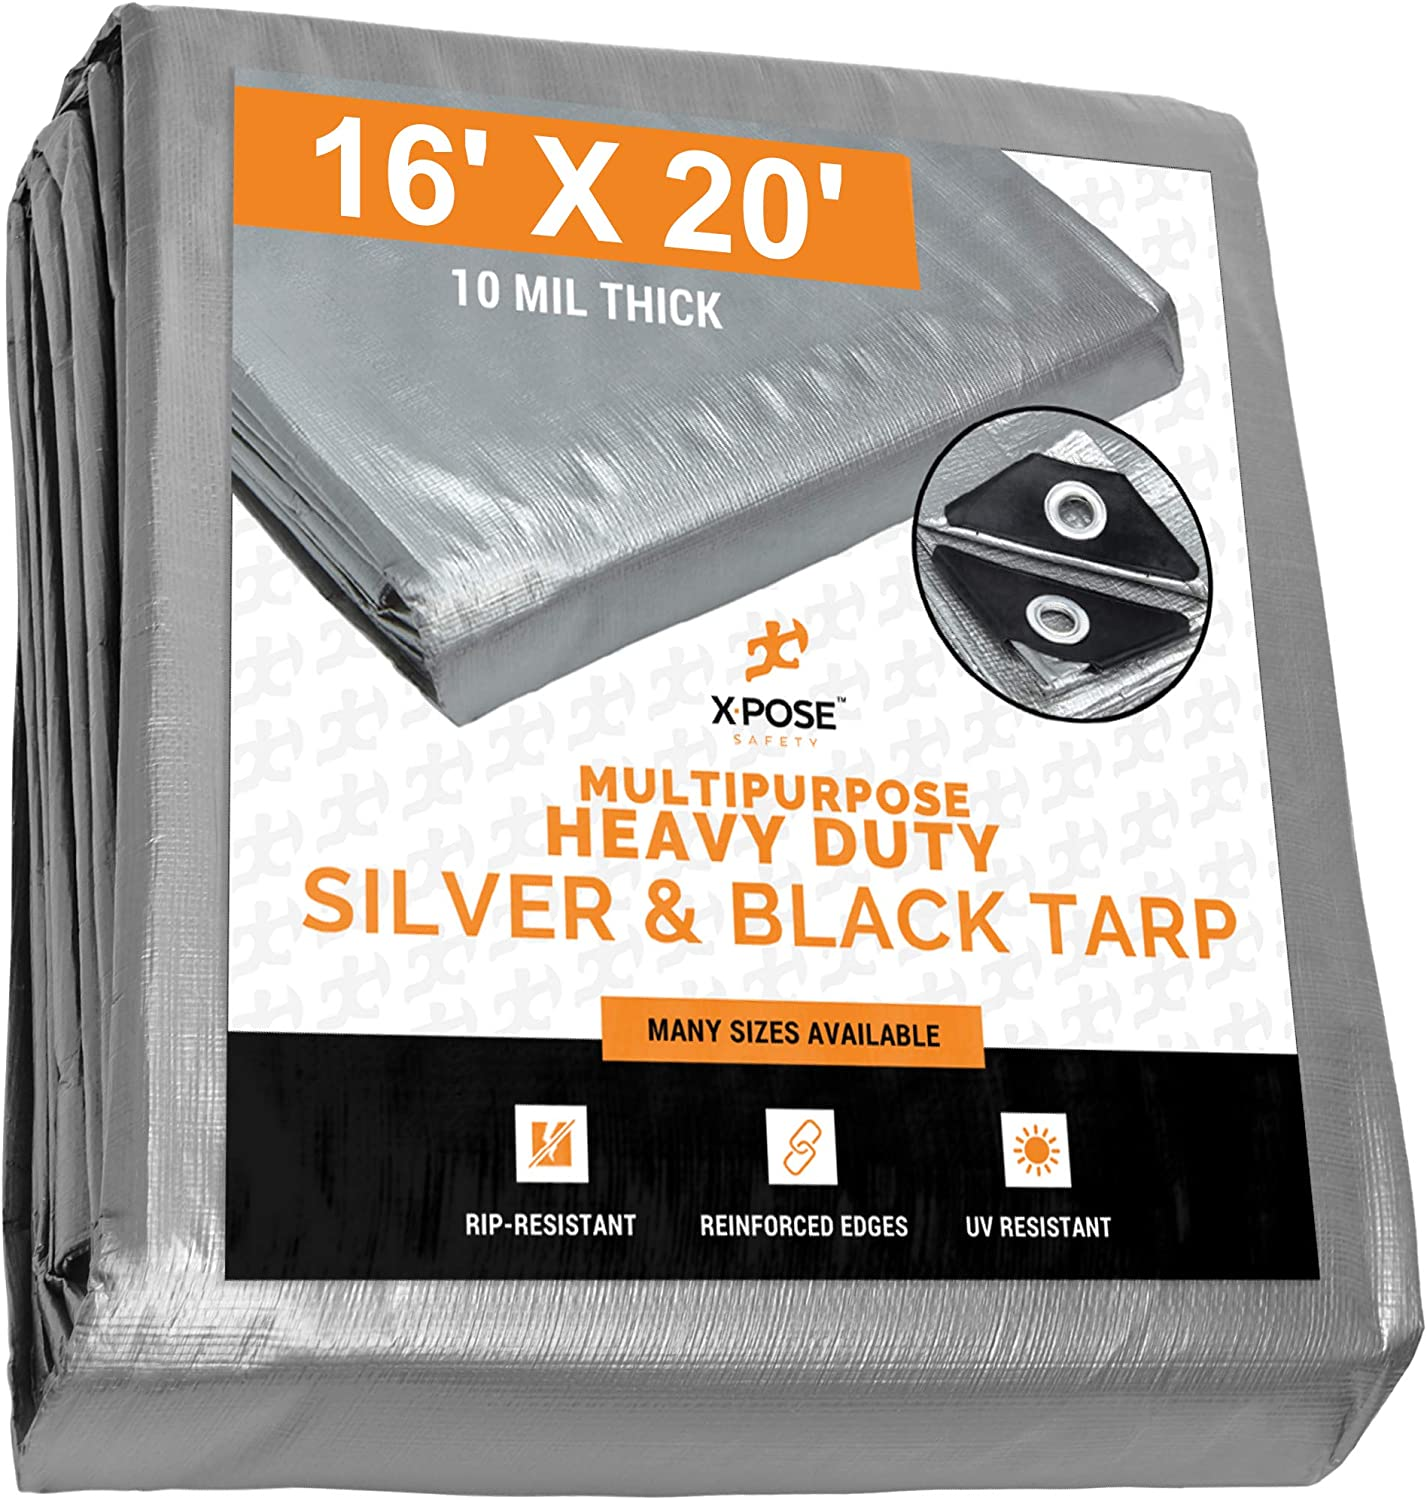 Heavy Duty Poly Tarp - 16' x 20' - 10 Mil Thick Waterproof, UV Blocking Protective Cover - Reversible Silver and Black - Laminated Coating - Rustproof Grommets - by Xpose Safety